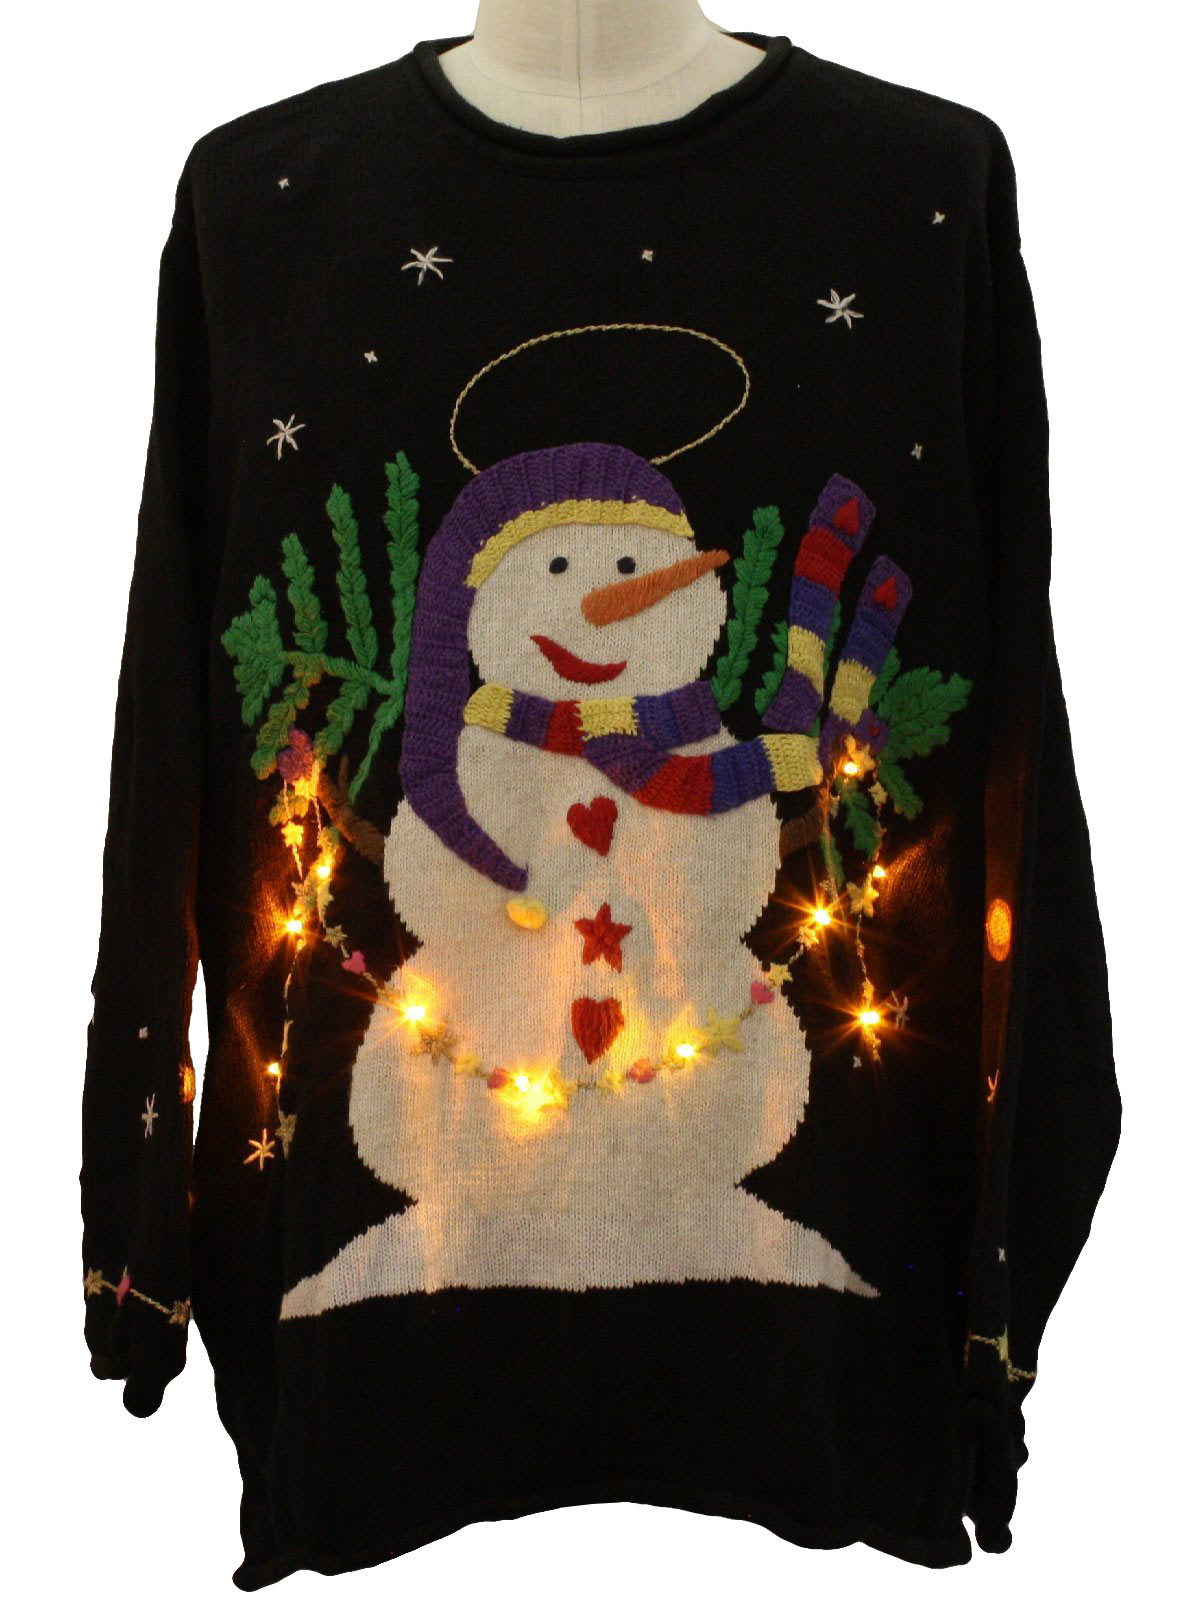 Lightup Ugly Christmas Sweater: -Quacker Factory- Unisex black ...